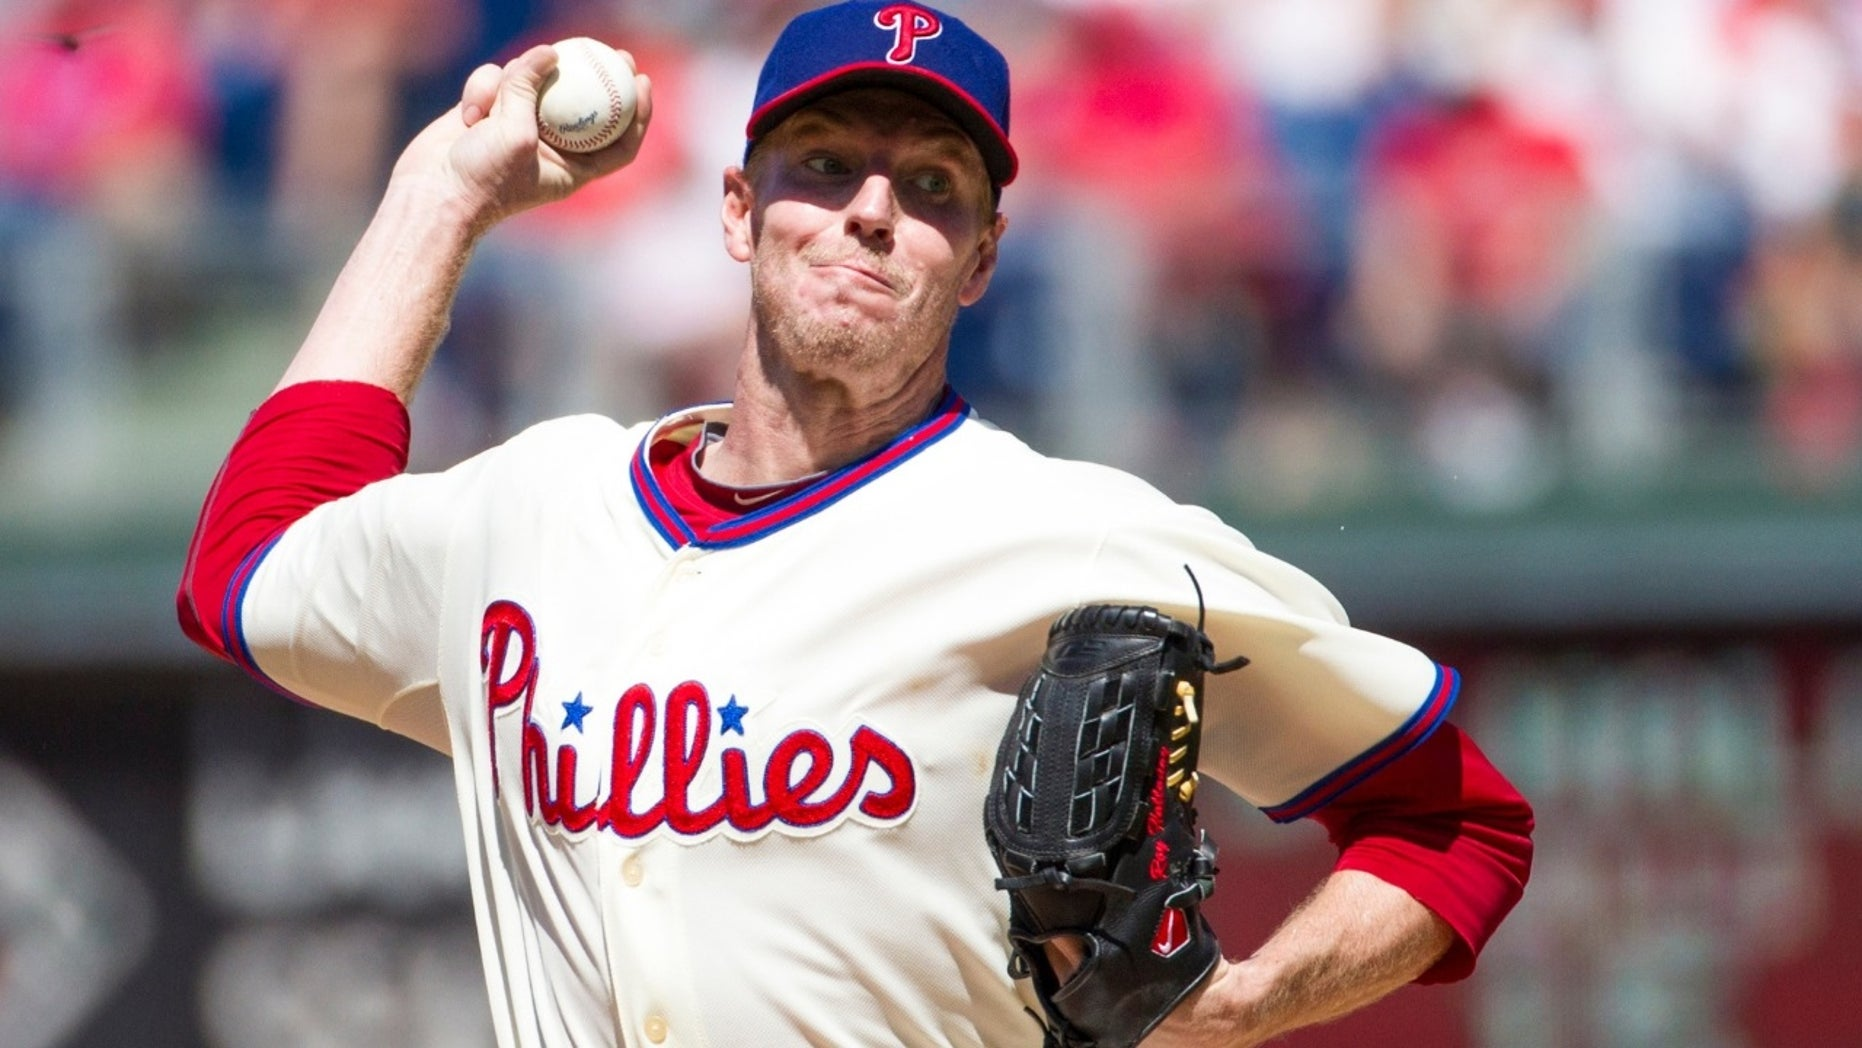 Late Mlb Starting Pitcher Roy Halladay Will Not Have A Logo On The Cap Of His